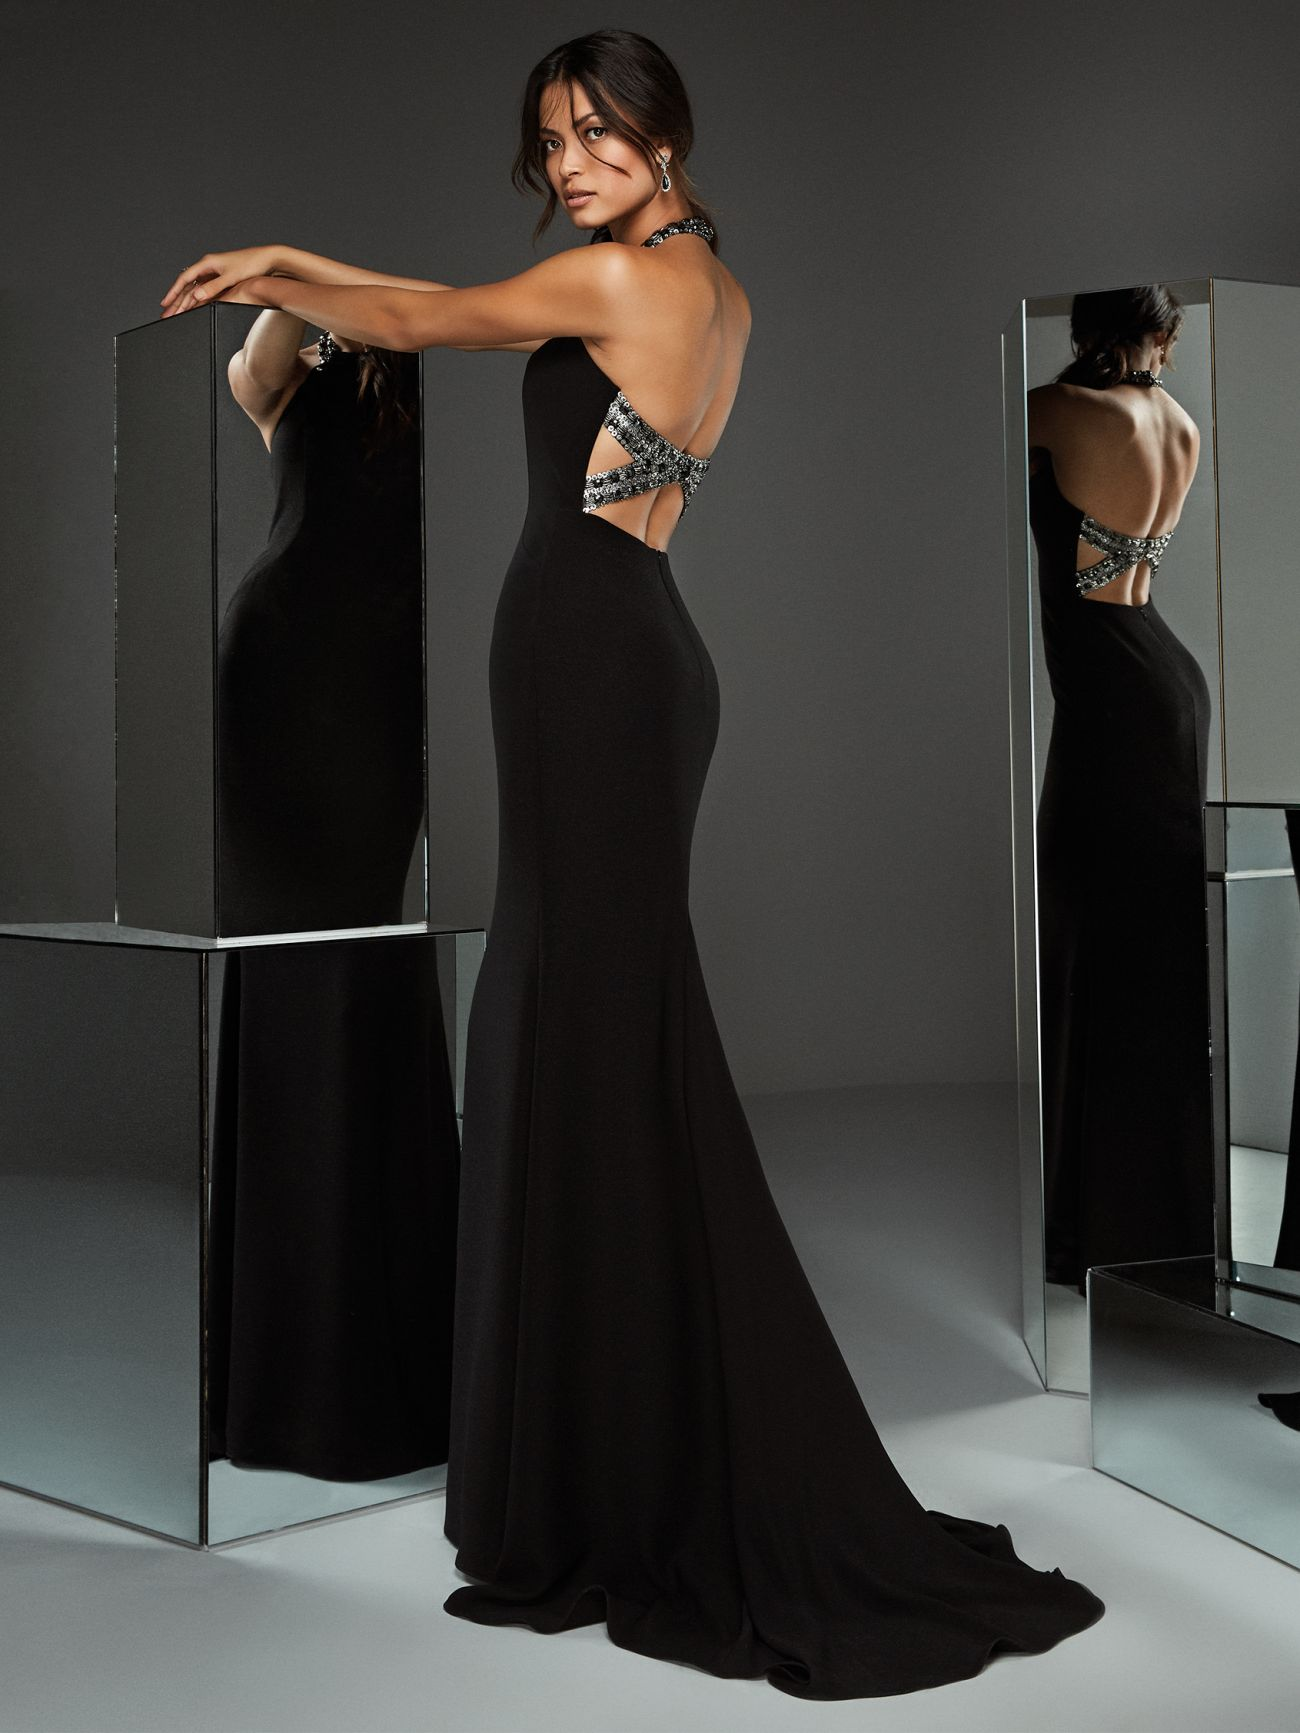 Black Tie Evening Dresses Marian Gale Boutique